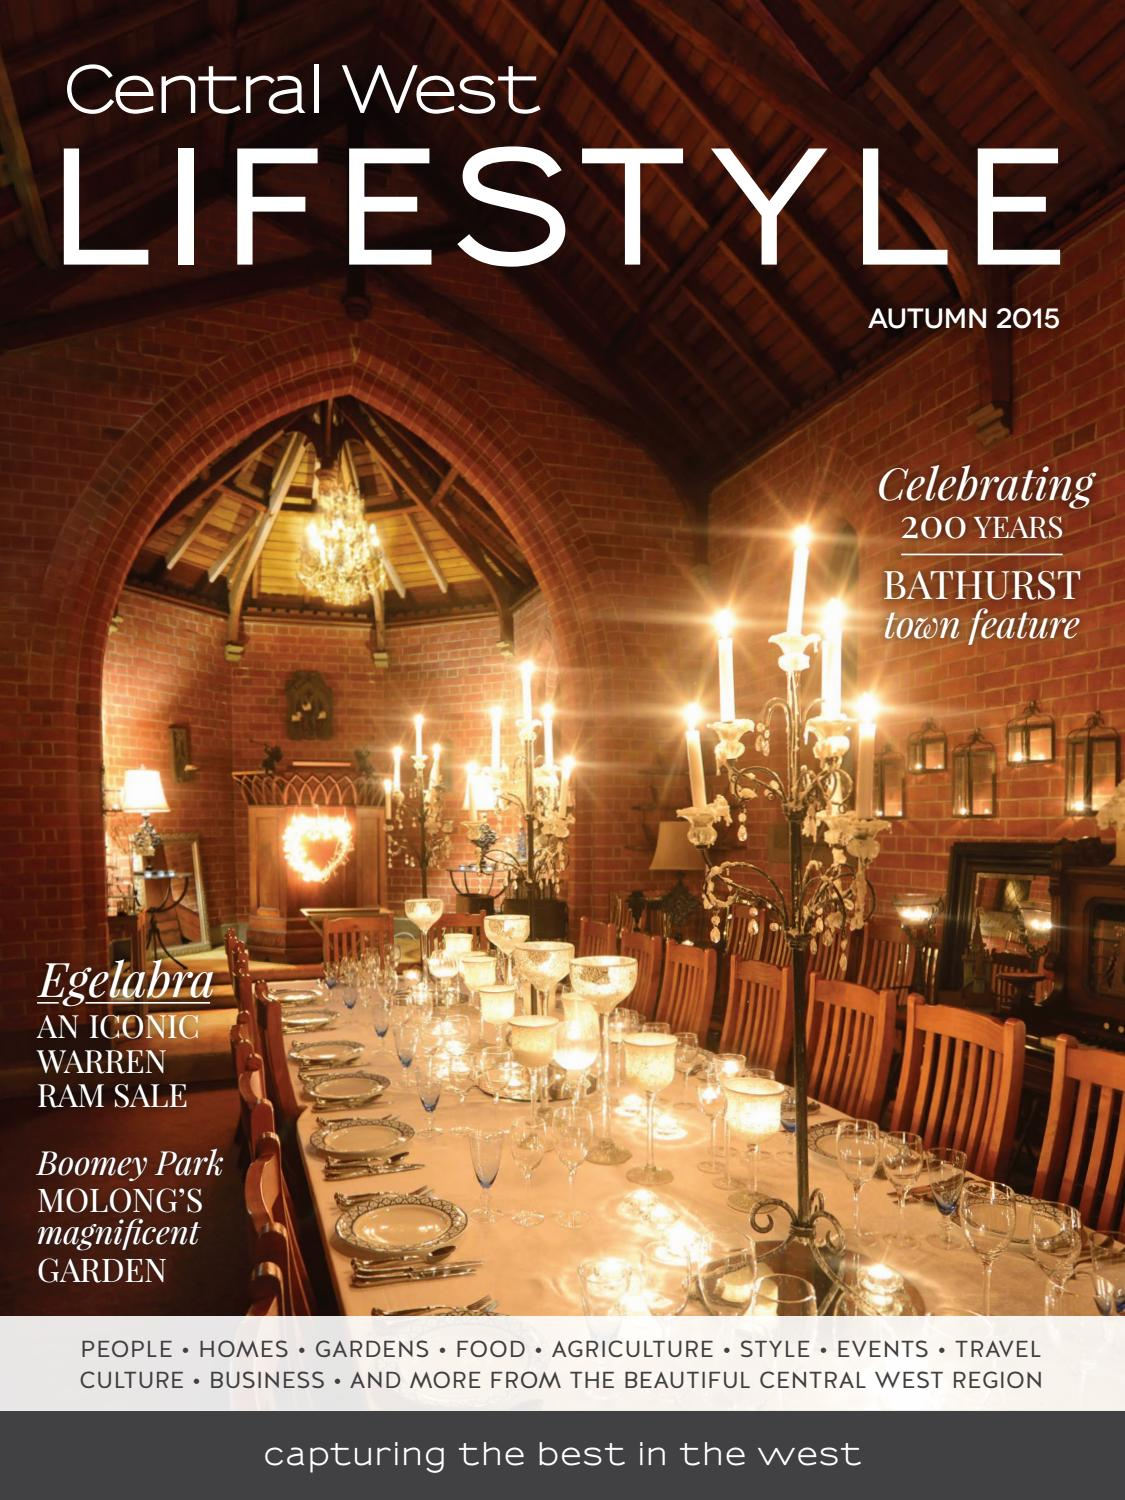 8 Central West Lifestyle | Autumn 2015 by Regional Lifestyle